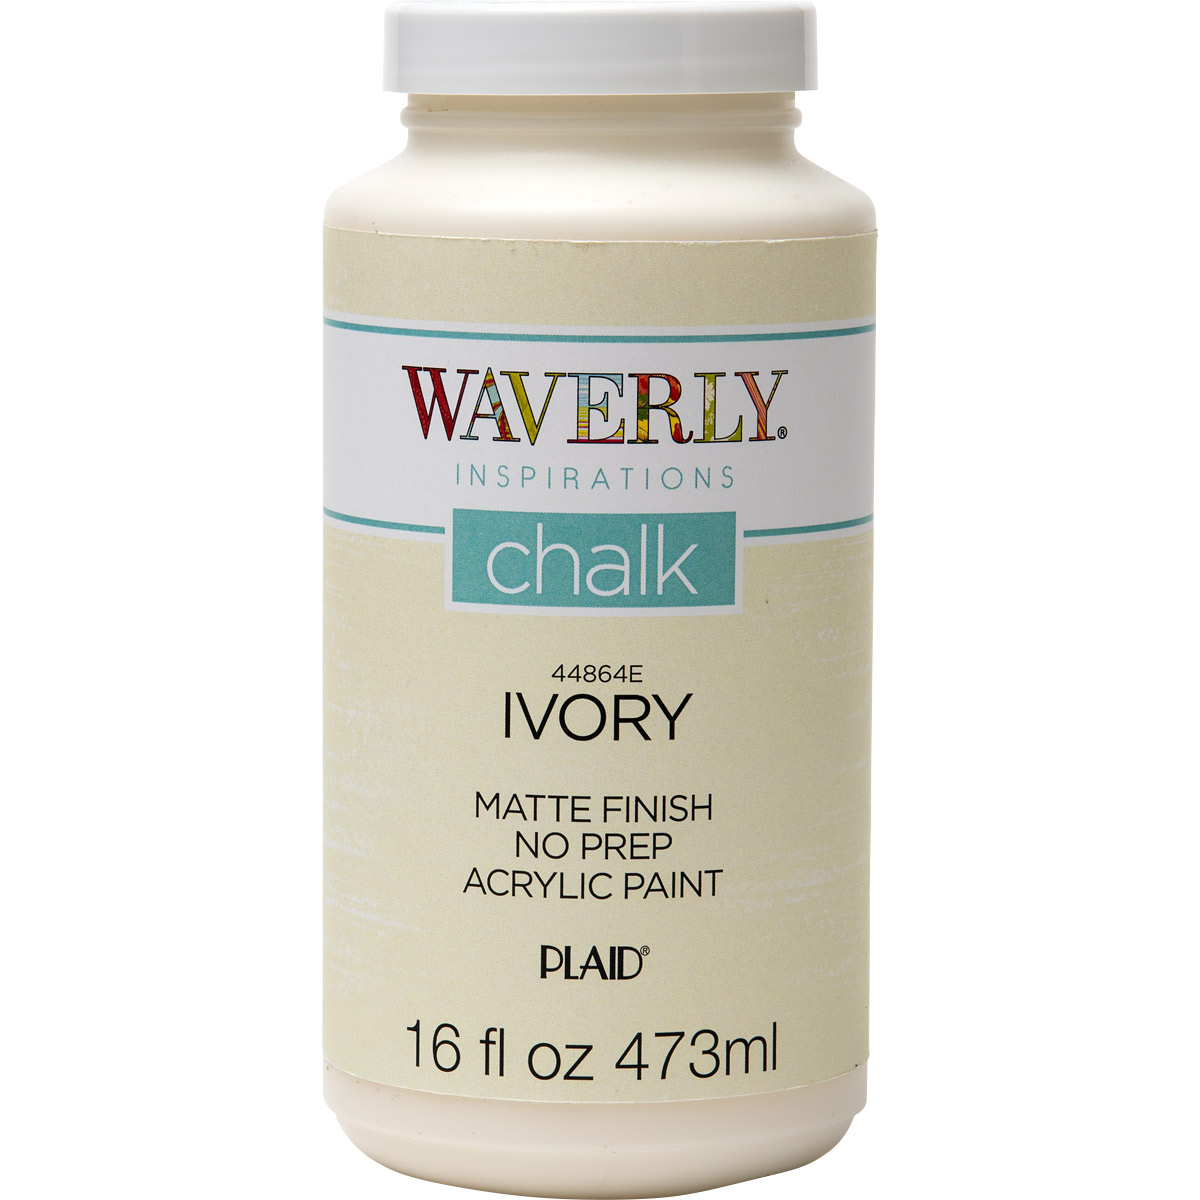 Waverly ® Inspirations Chalk Finish Acrylic Paint - Ivory, 16 oz. - 44864E